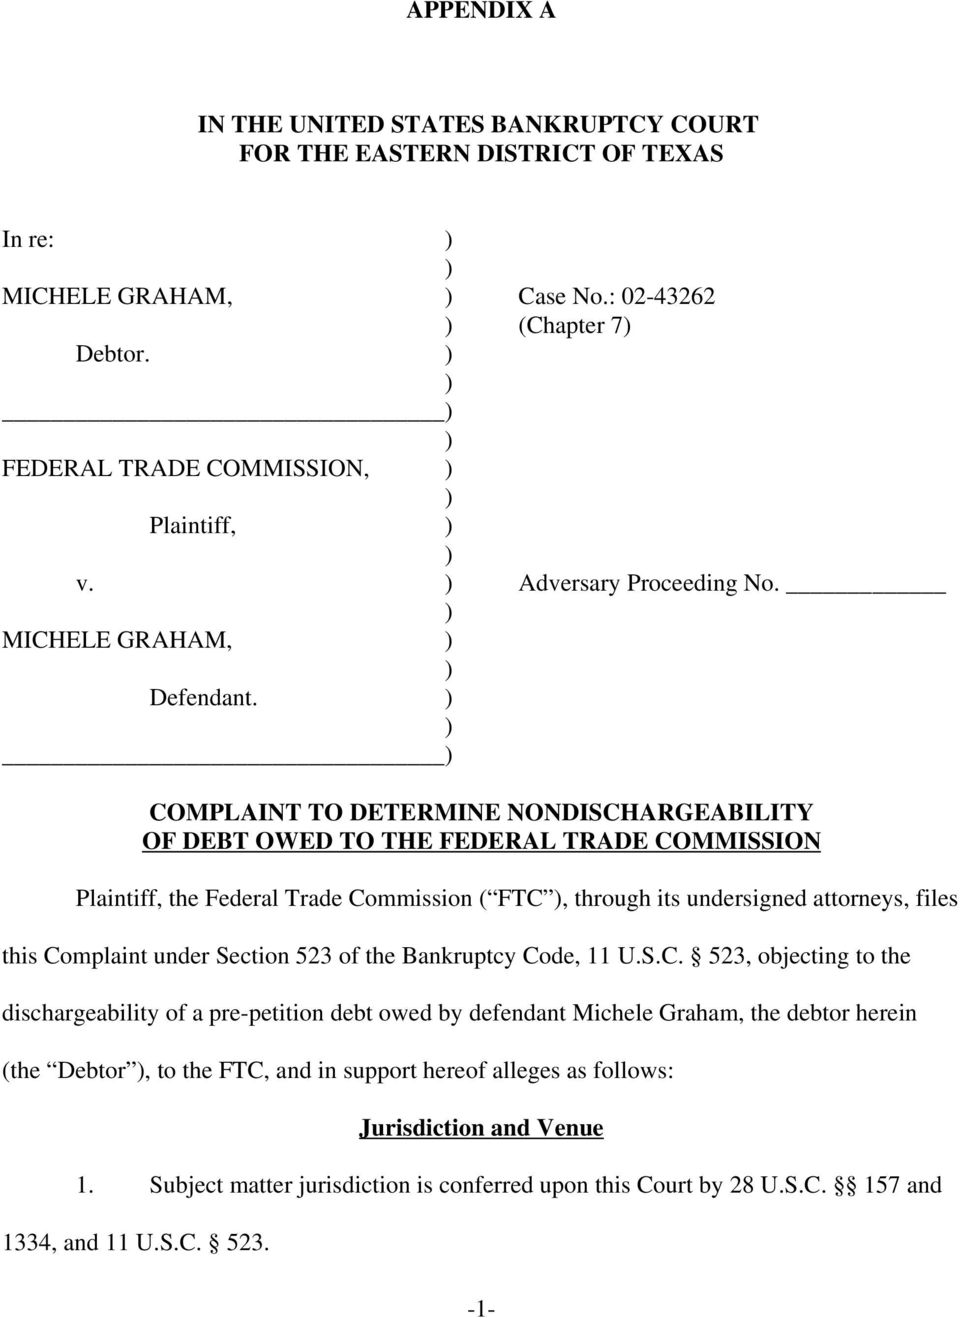 COMPLAINT TO DETERMINE NONDISCHARGEABILITY OF DEBT OWED TO THE FEDERAL TRADE COMMISSION Plaintiff, the Federal Trade Commission ( FTC, through its undersigned attorneys, files this Complaint under